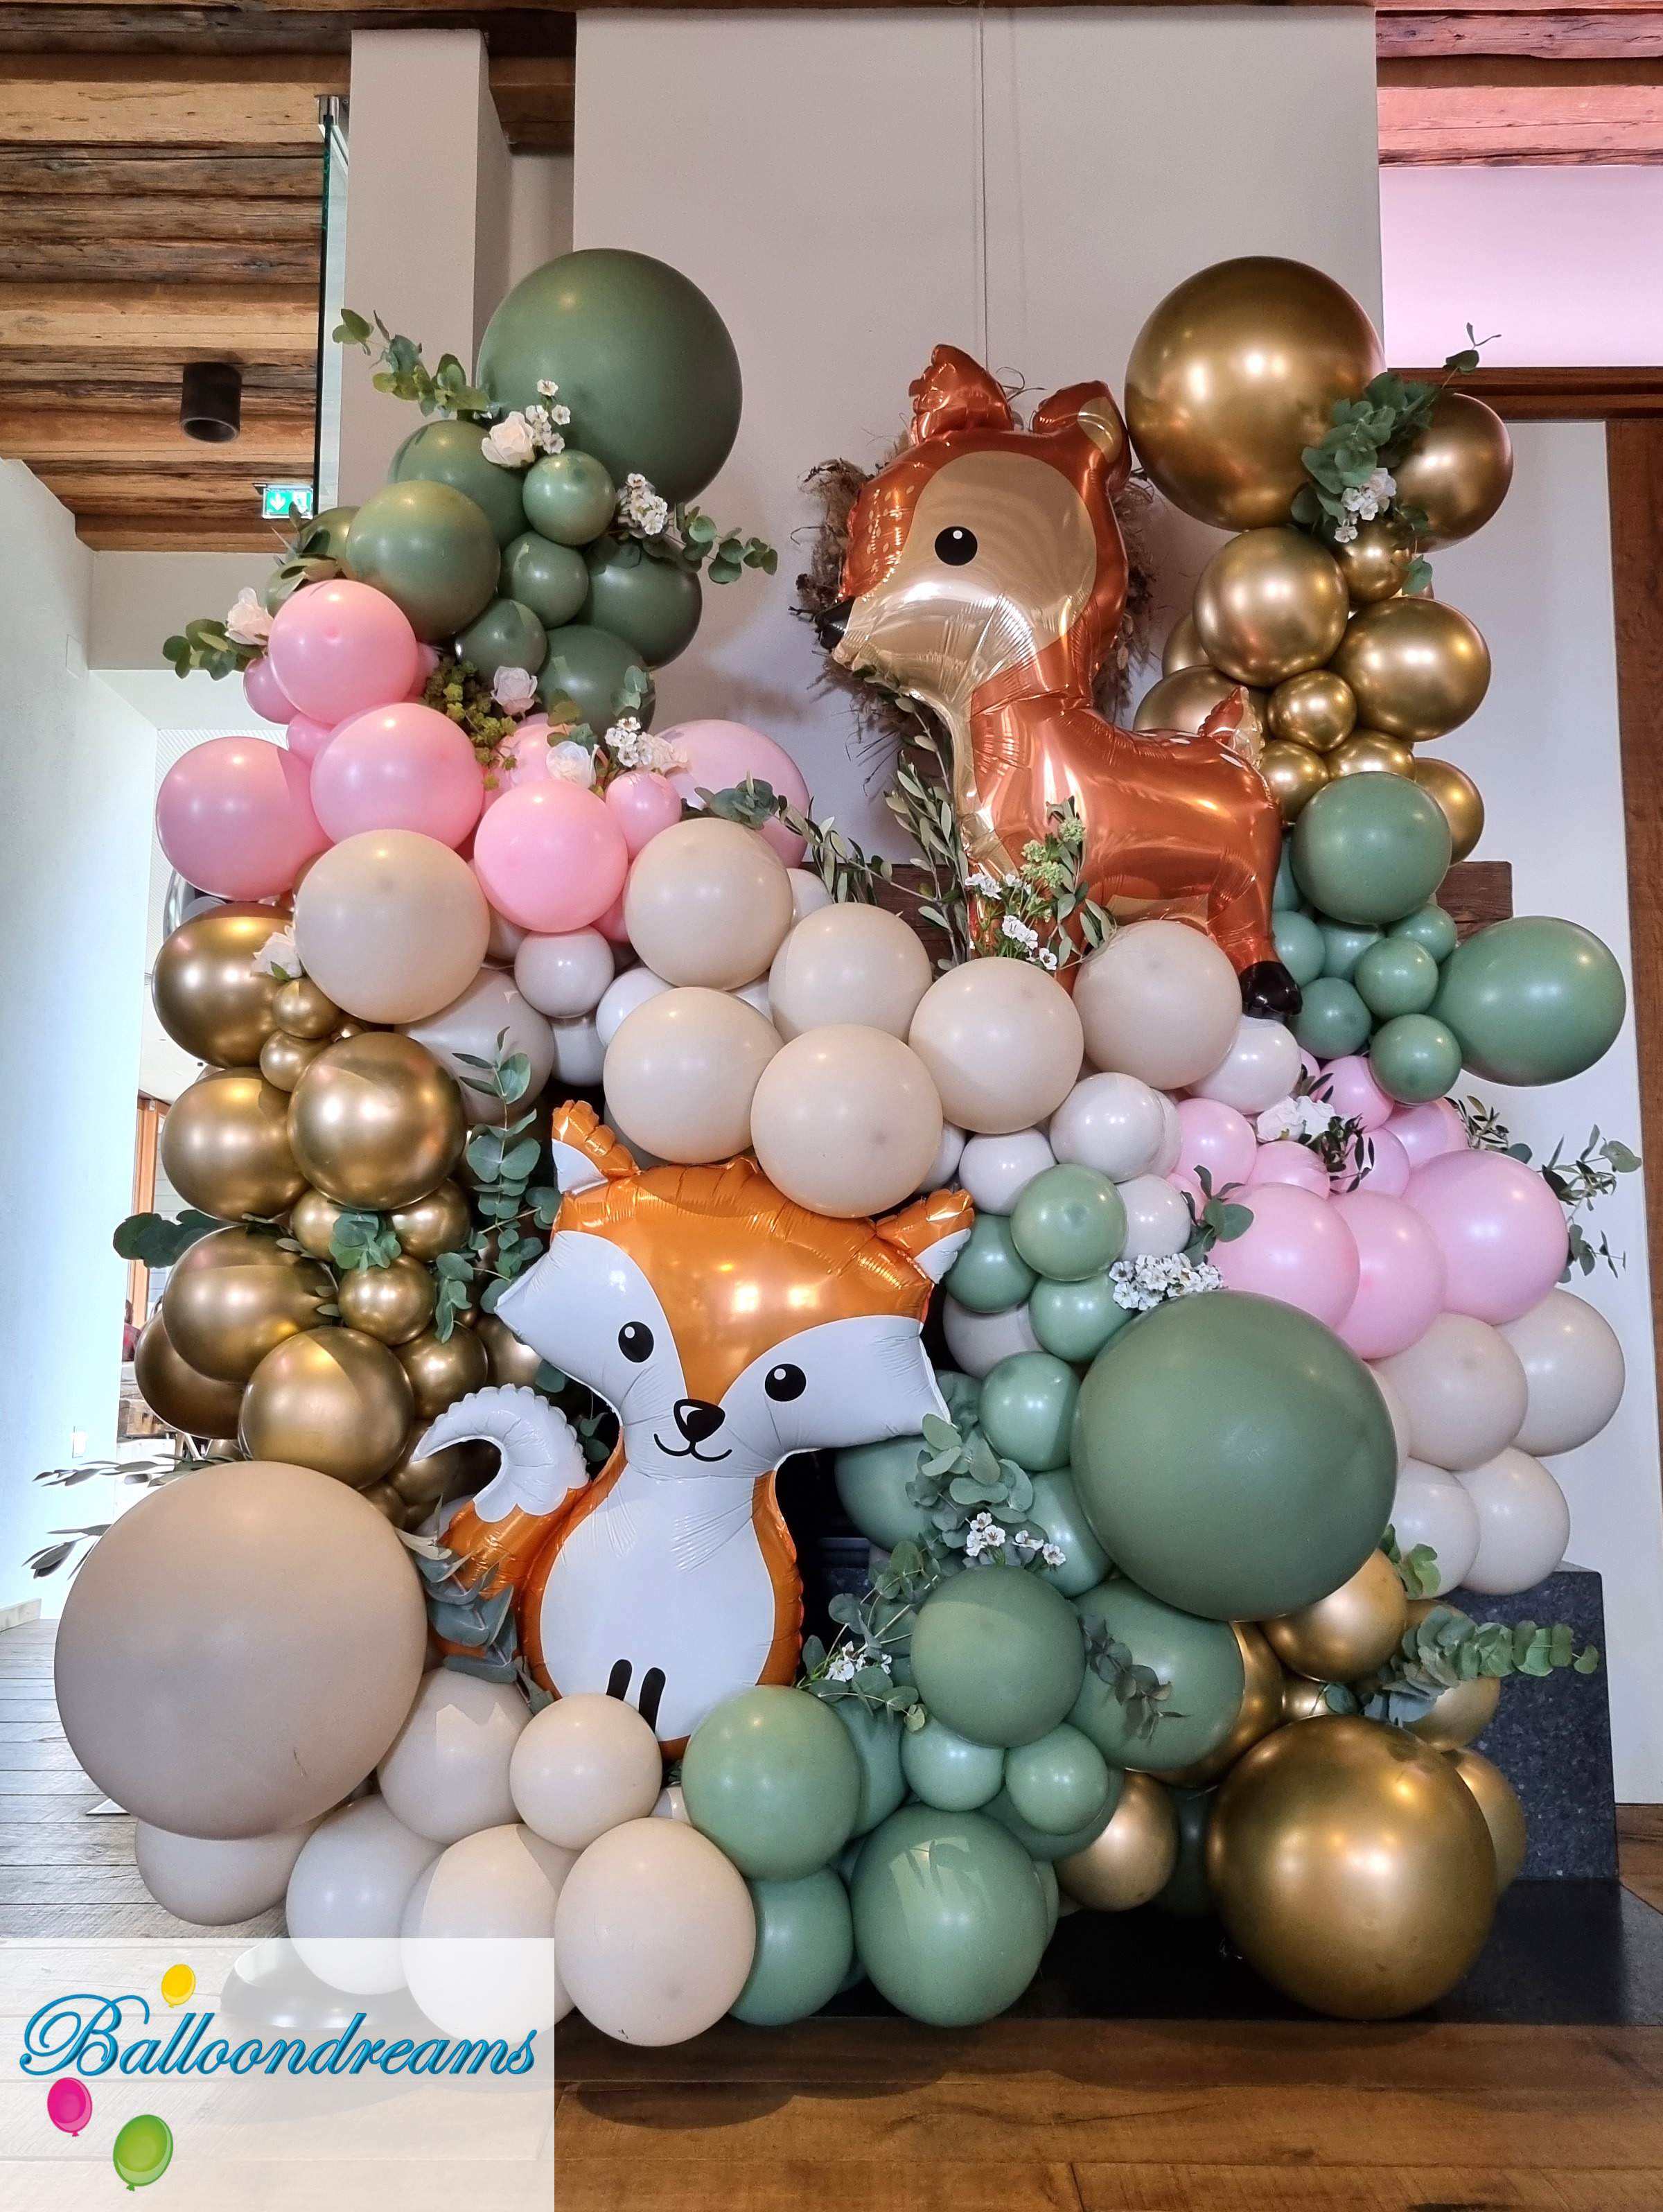 Ballonfiguren Giraffe, Tiger, Clown